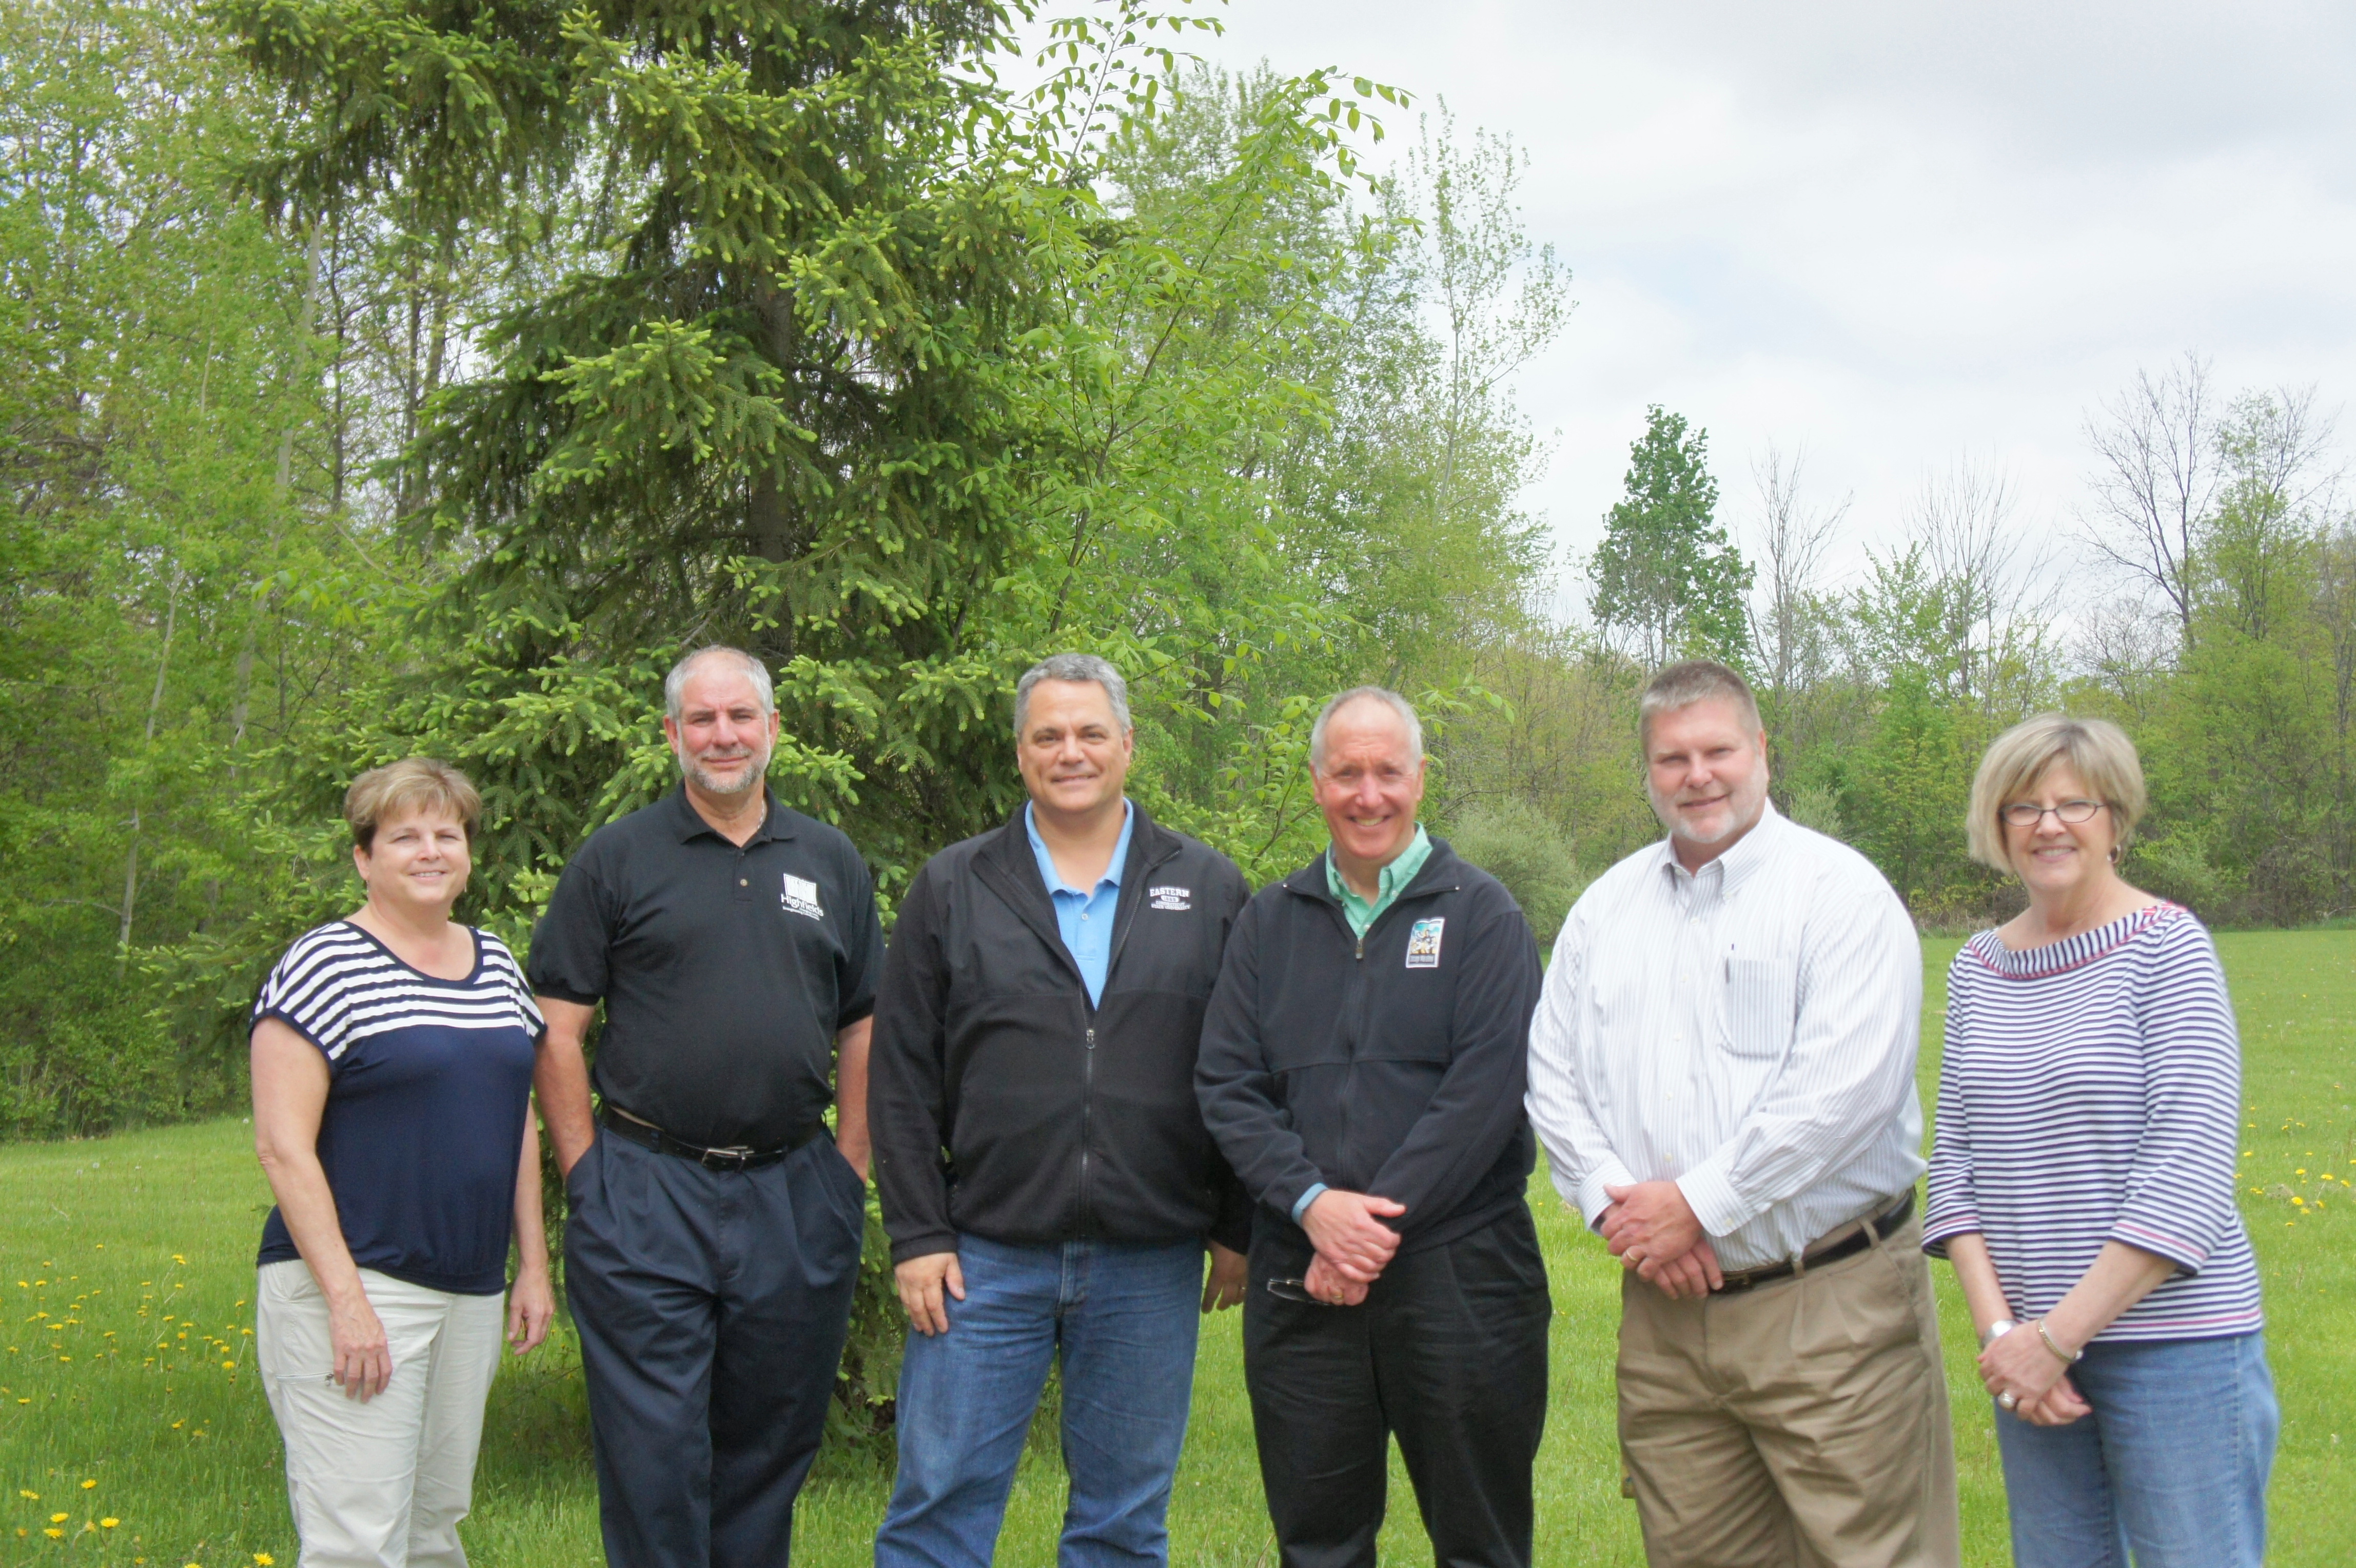 Our leadership team: Jill Clark, Derek Hitchcock, Edward St. John, Tim Monroe, Brian Philson and Beverley McGill.